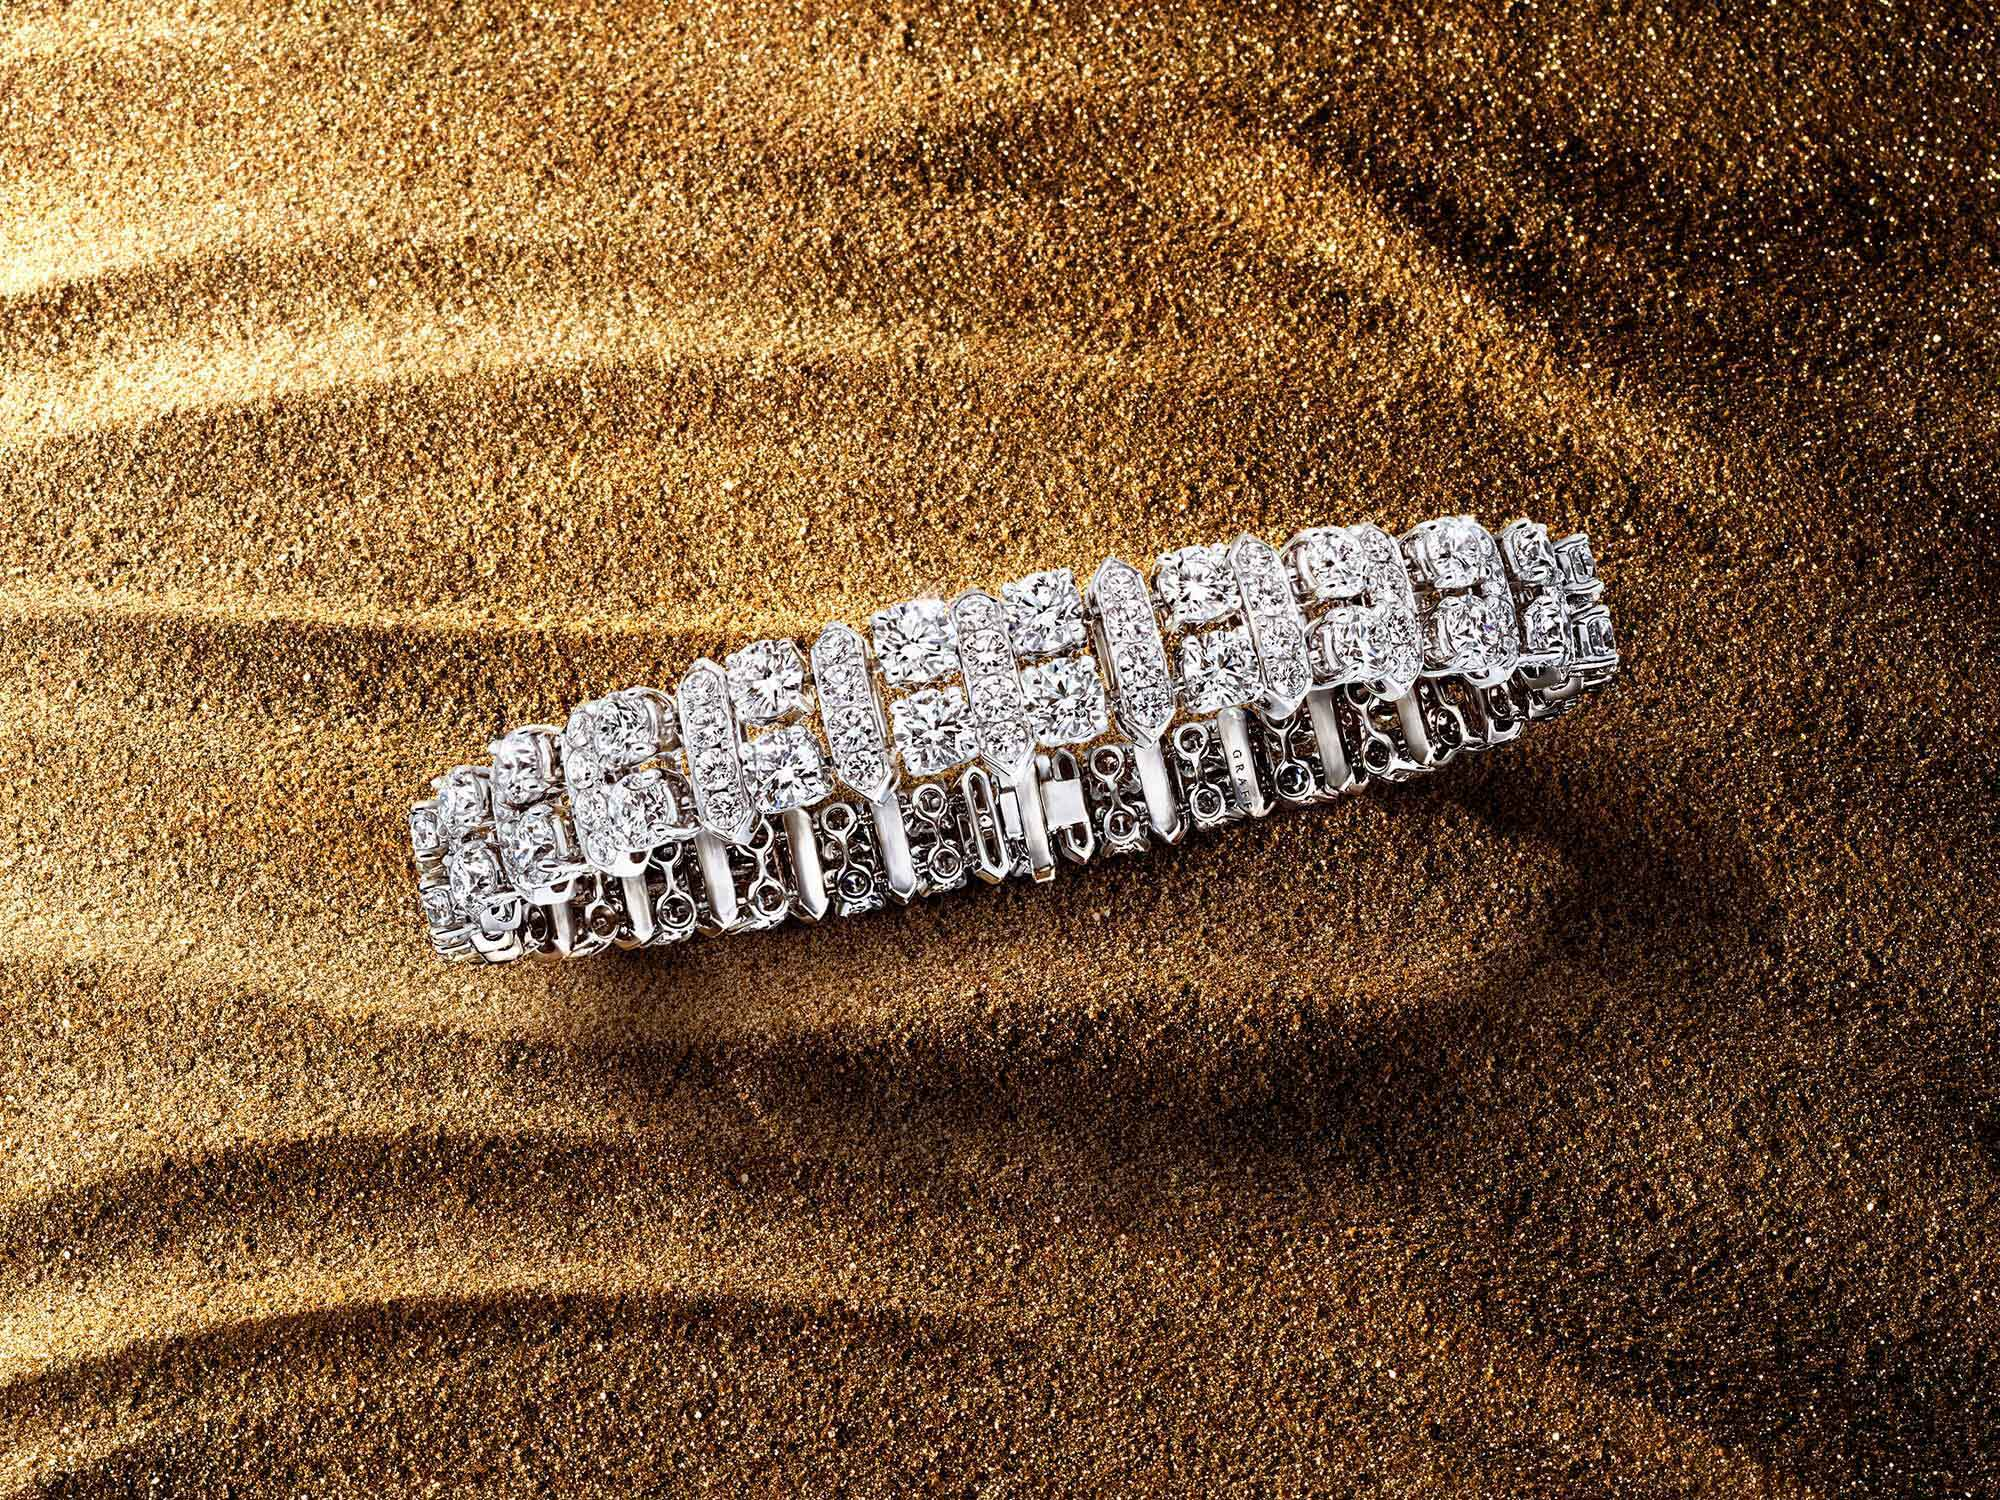 The Graff New Dawn diamond bracelet from the Tribal jewellery collection, on sand